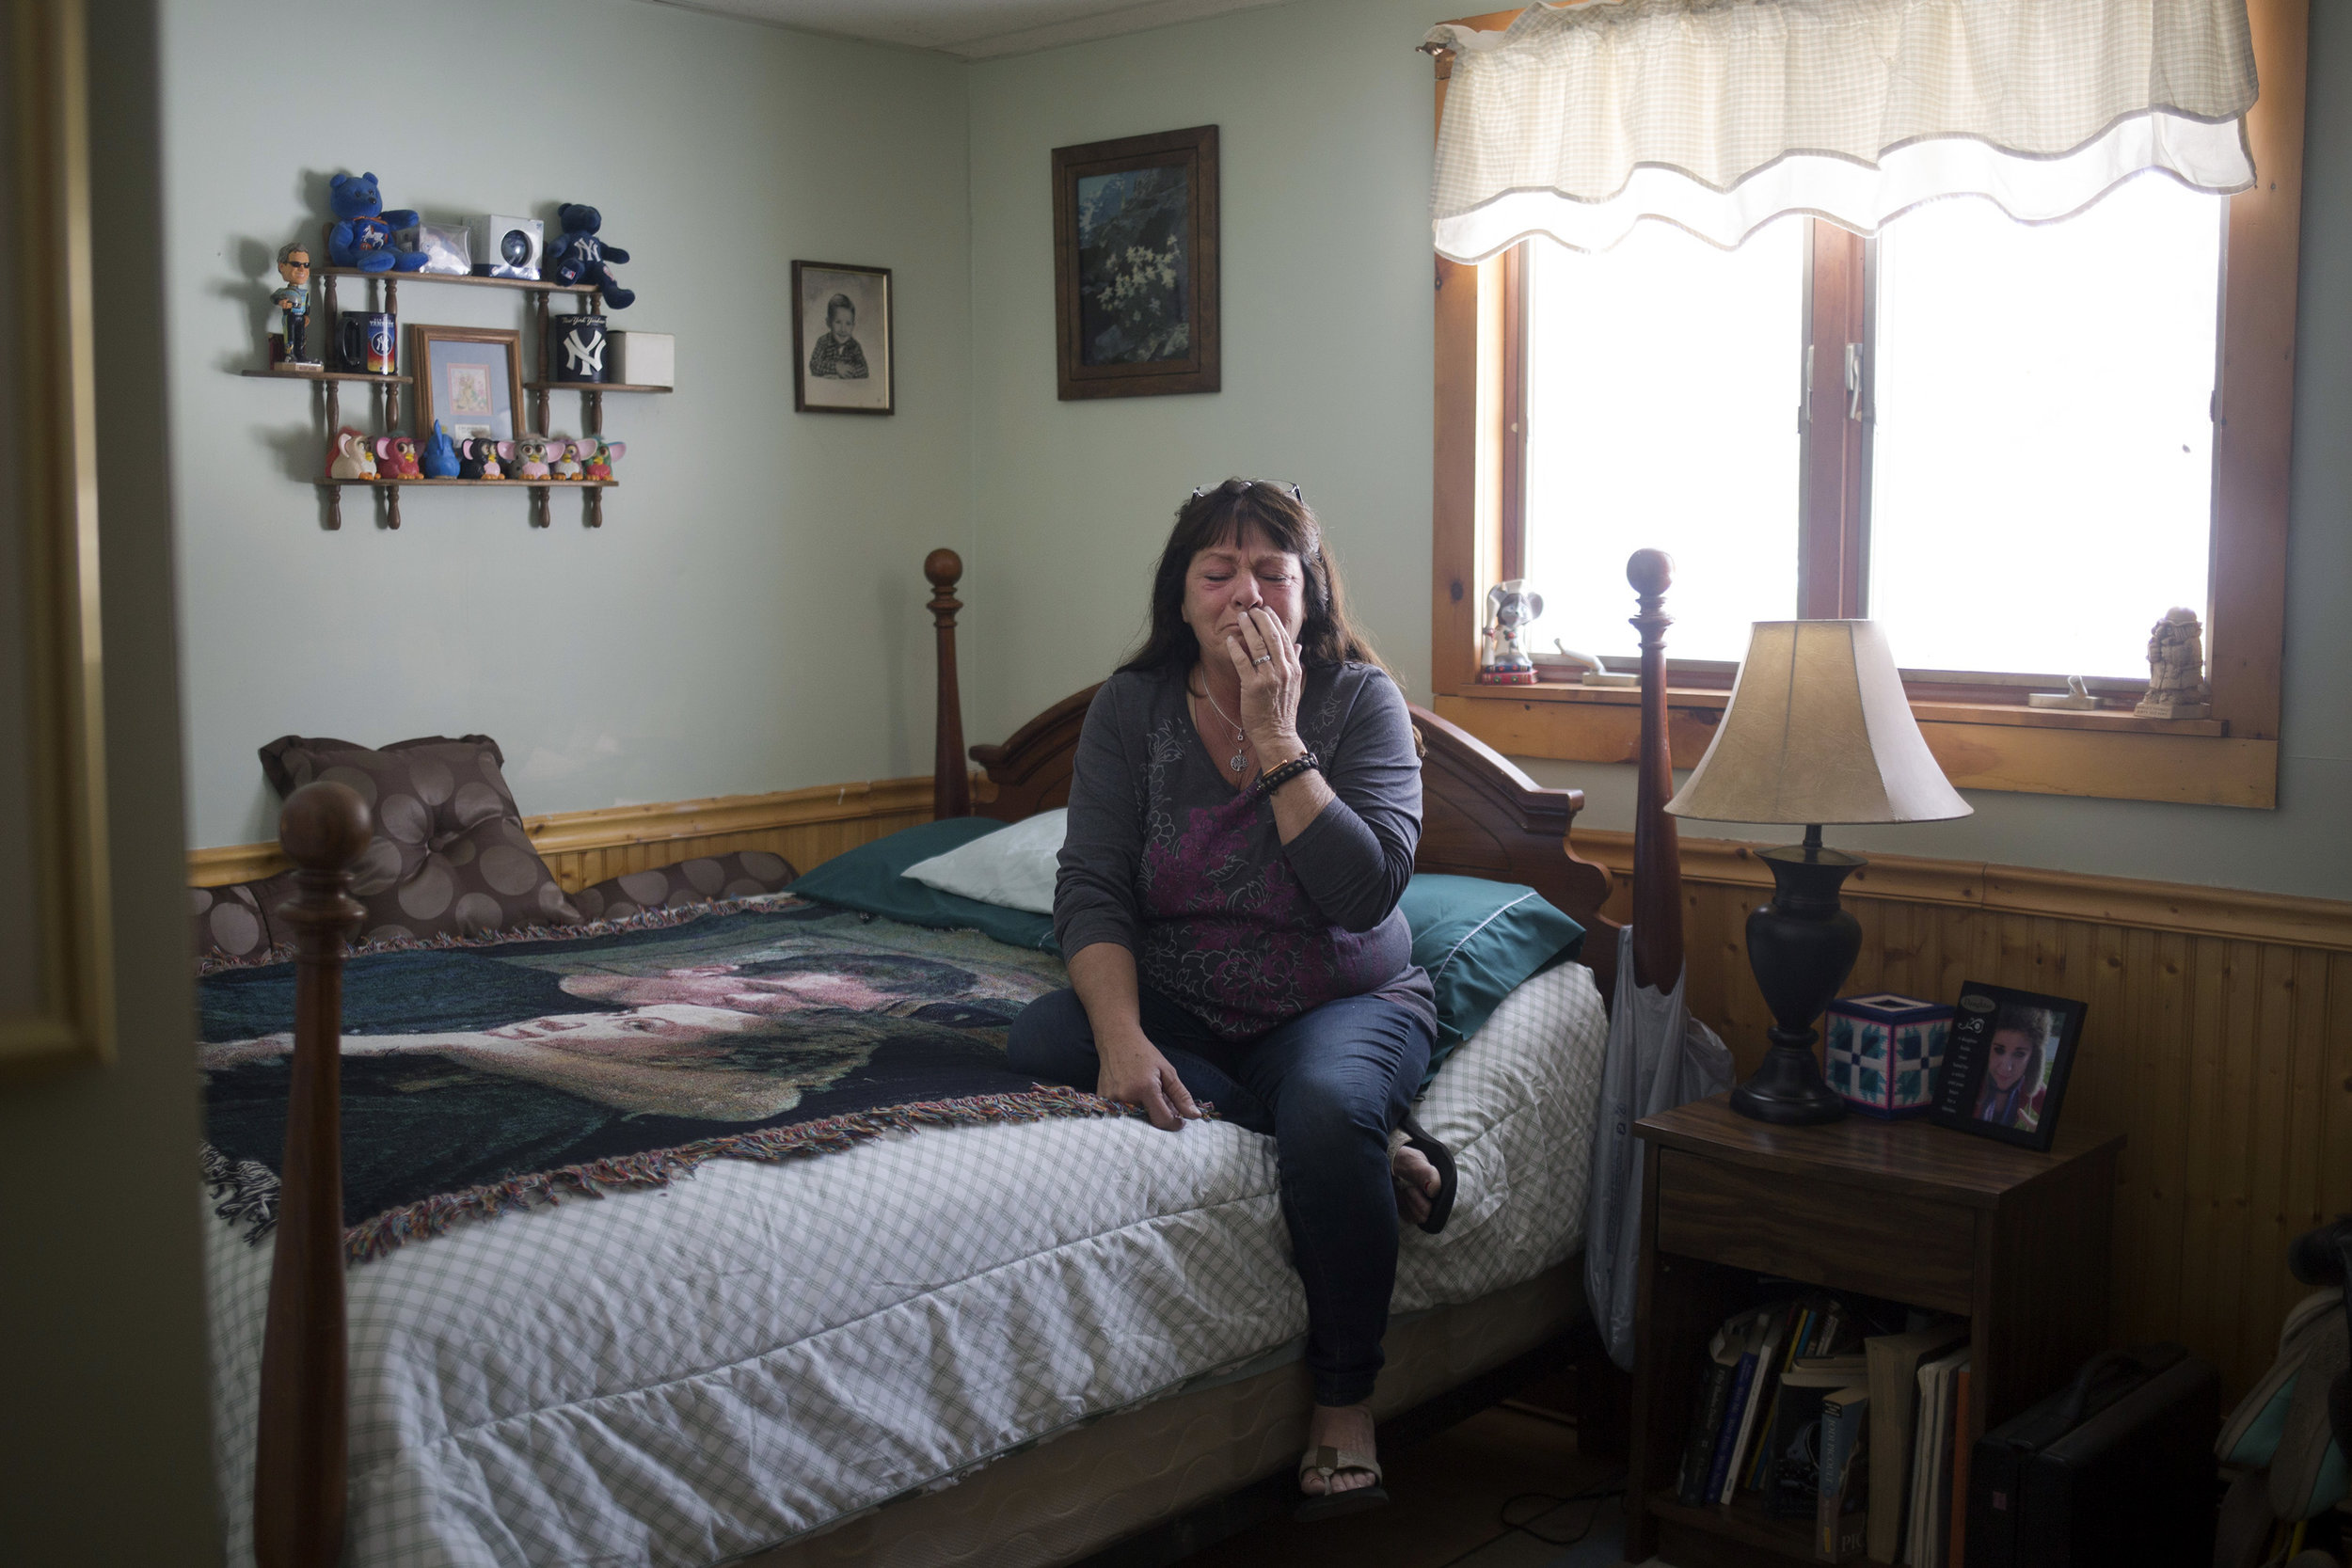 Gail McCarthy begins to cry as she sits in her daughter Ashley's old room at her home in Stetson, Maine. Gail lost not one, but two children to opioid overdoses. She found Ashley dead from a methadone overdose in her bed on Nov. 20, 2013, at 21 years old.Gail's son Matthew died 16 months later of an overdose on April 2, 2015. He was 24 years old.